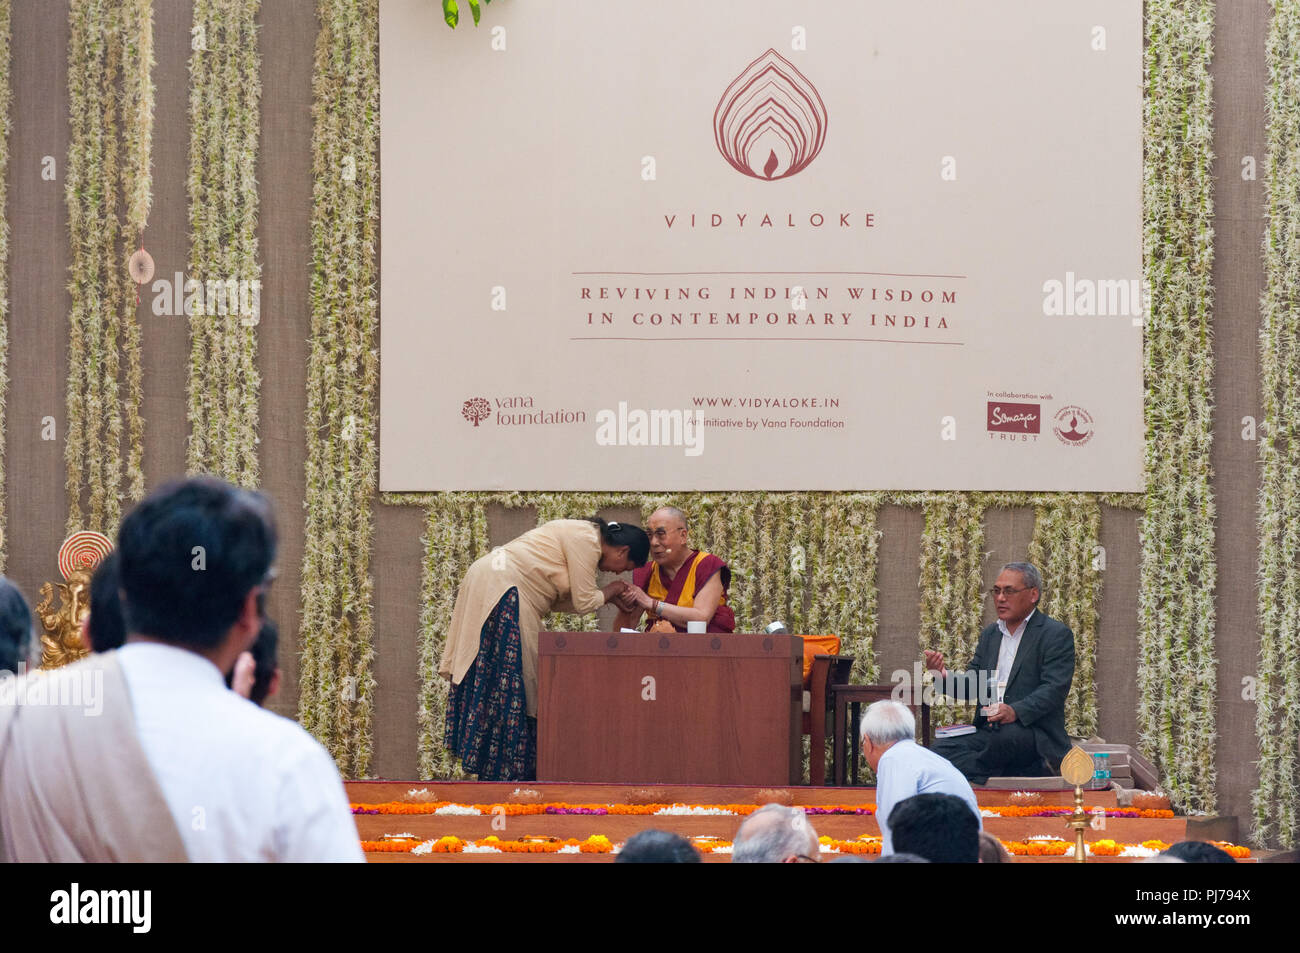 MUMBAI, INDIA – December 10 2017: The 14th Dalai Lama, the Buddhist religious head, blesses a woman on the stage at a lecture event. - Stock Image